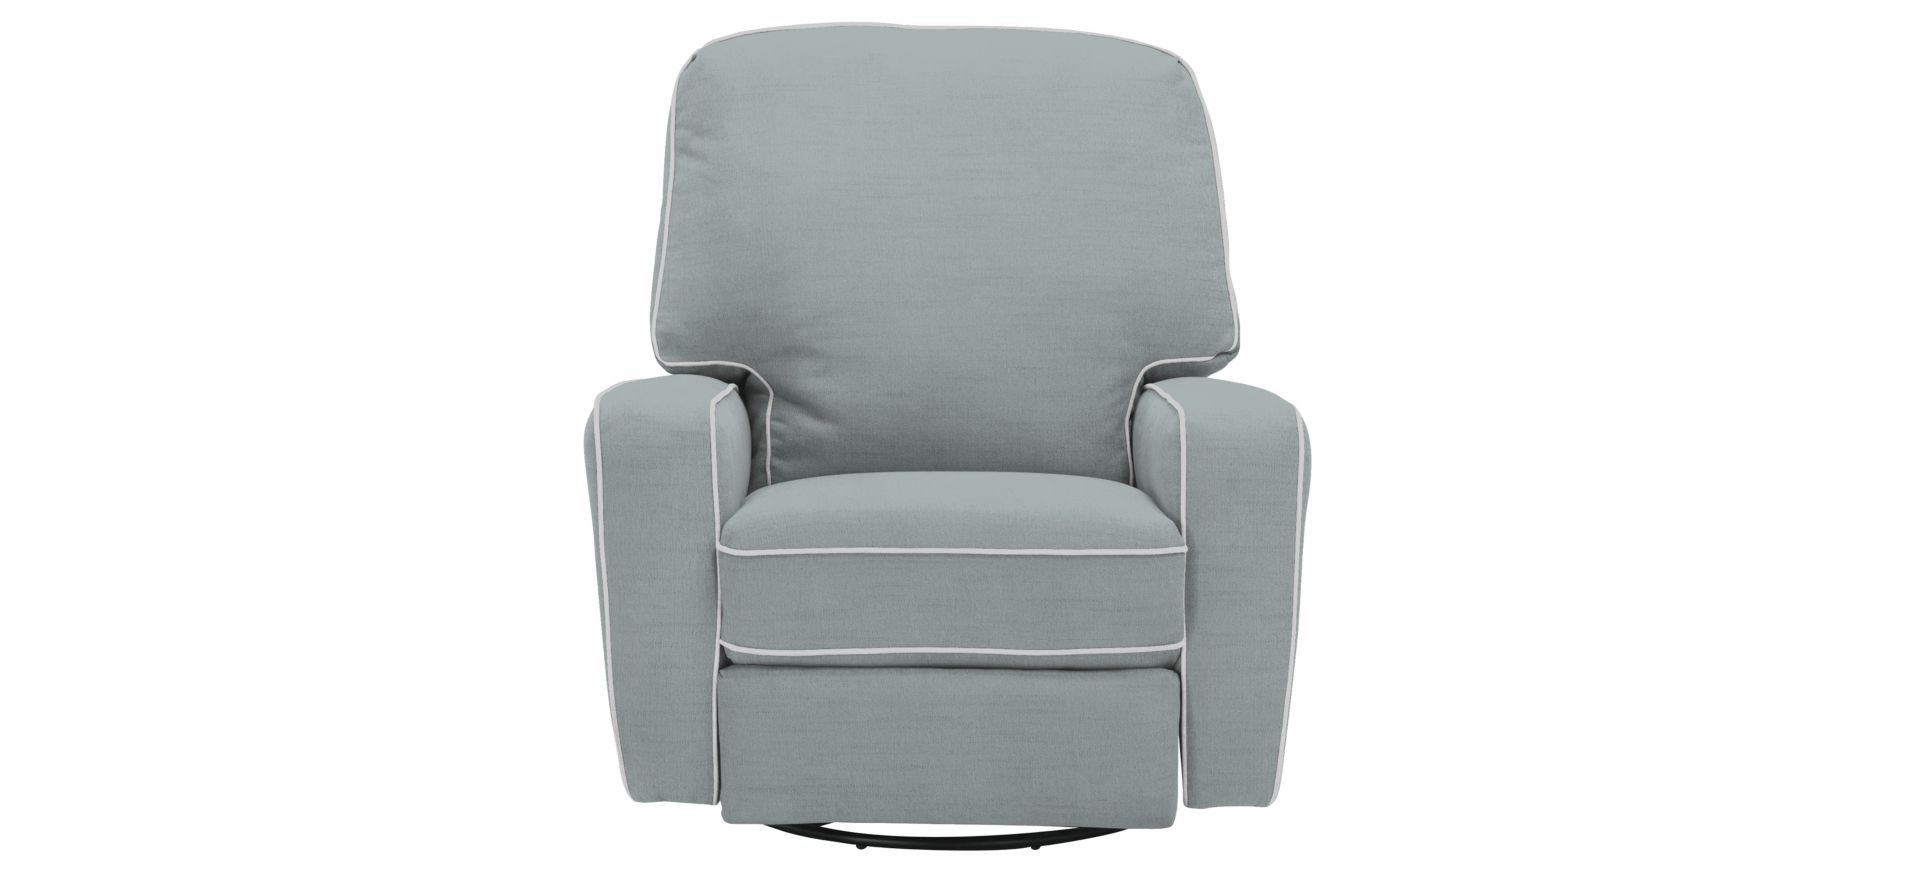 Skyler Swivel Chair.png